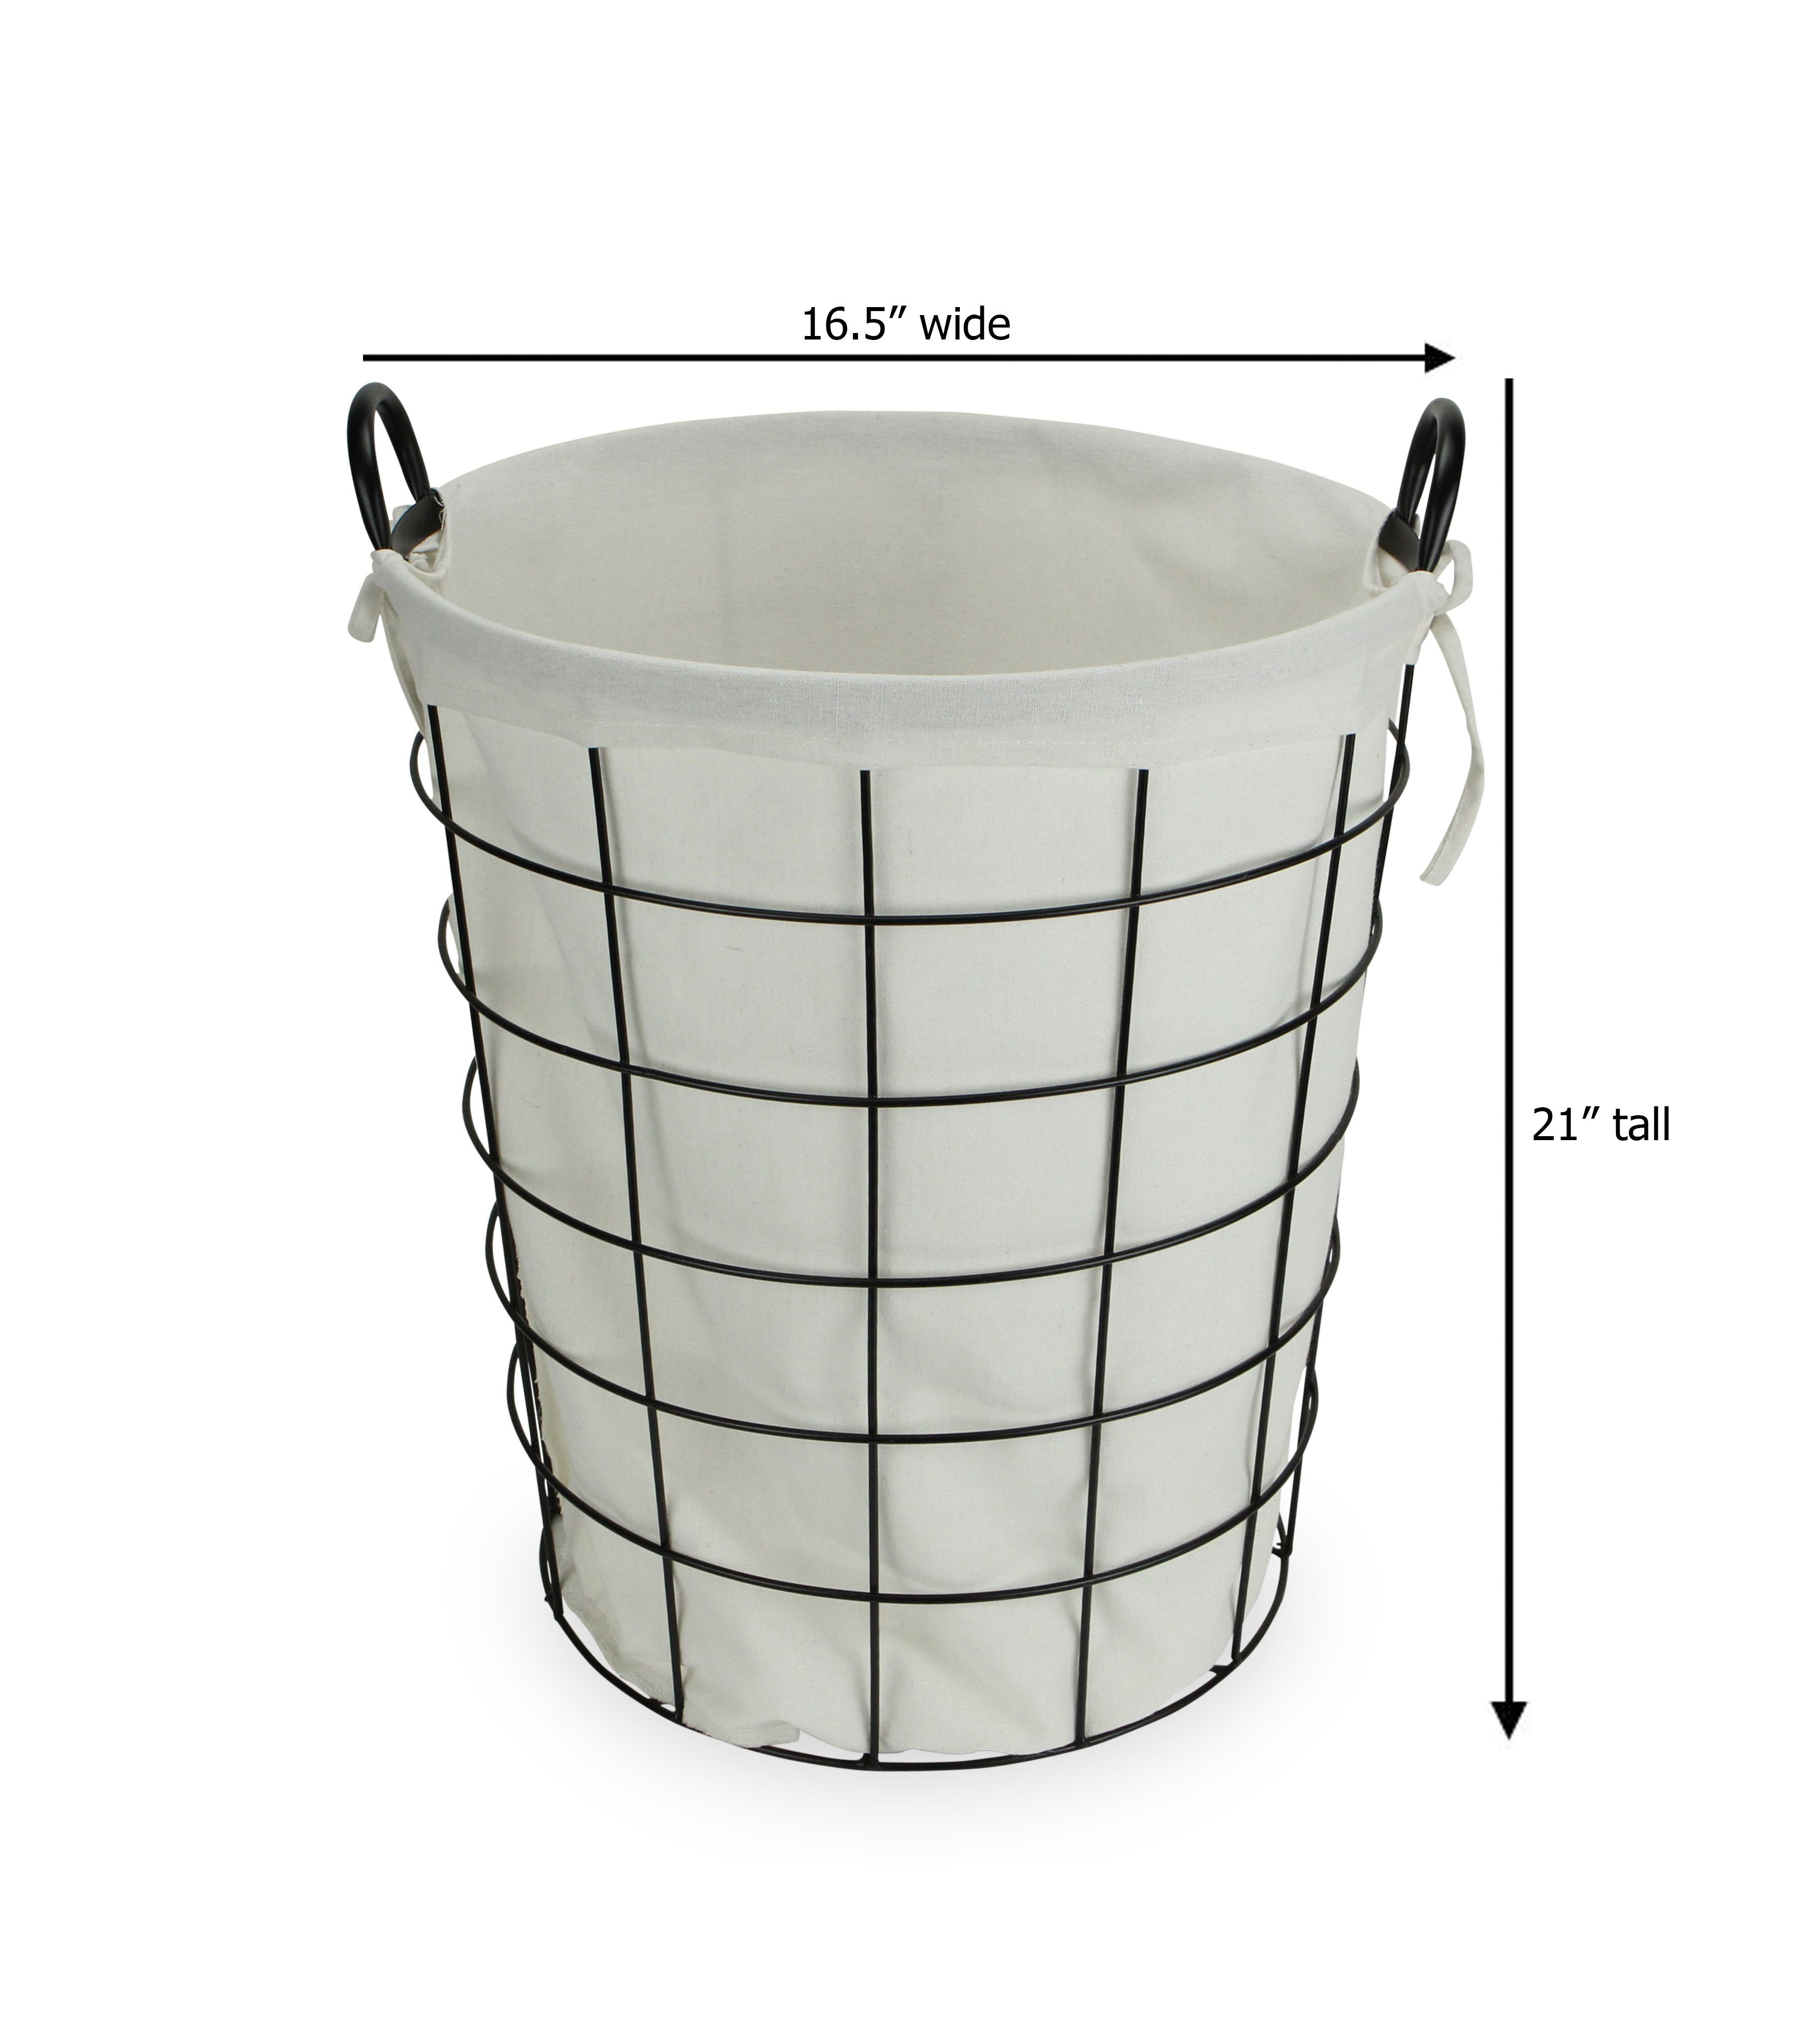 Cheungs Lined Metal Basket Wayfair Metal Baskets Wire Laundry